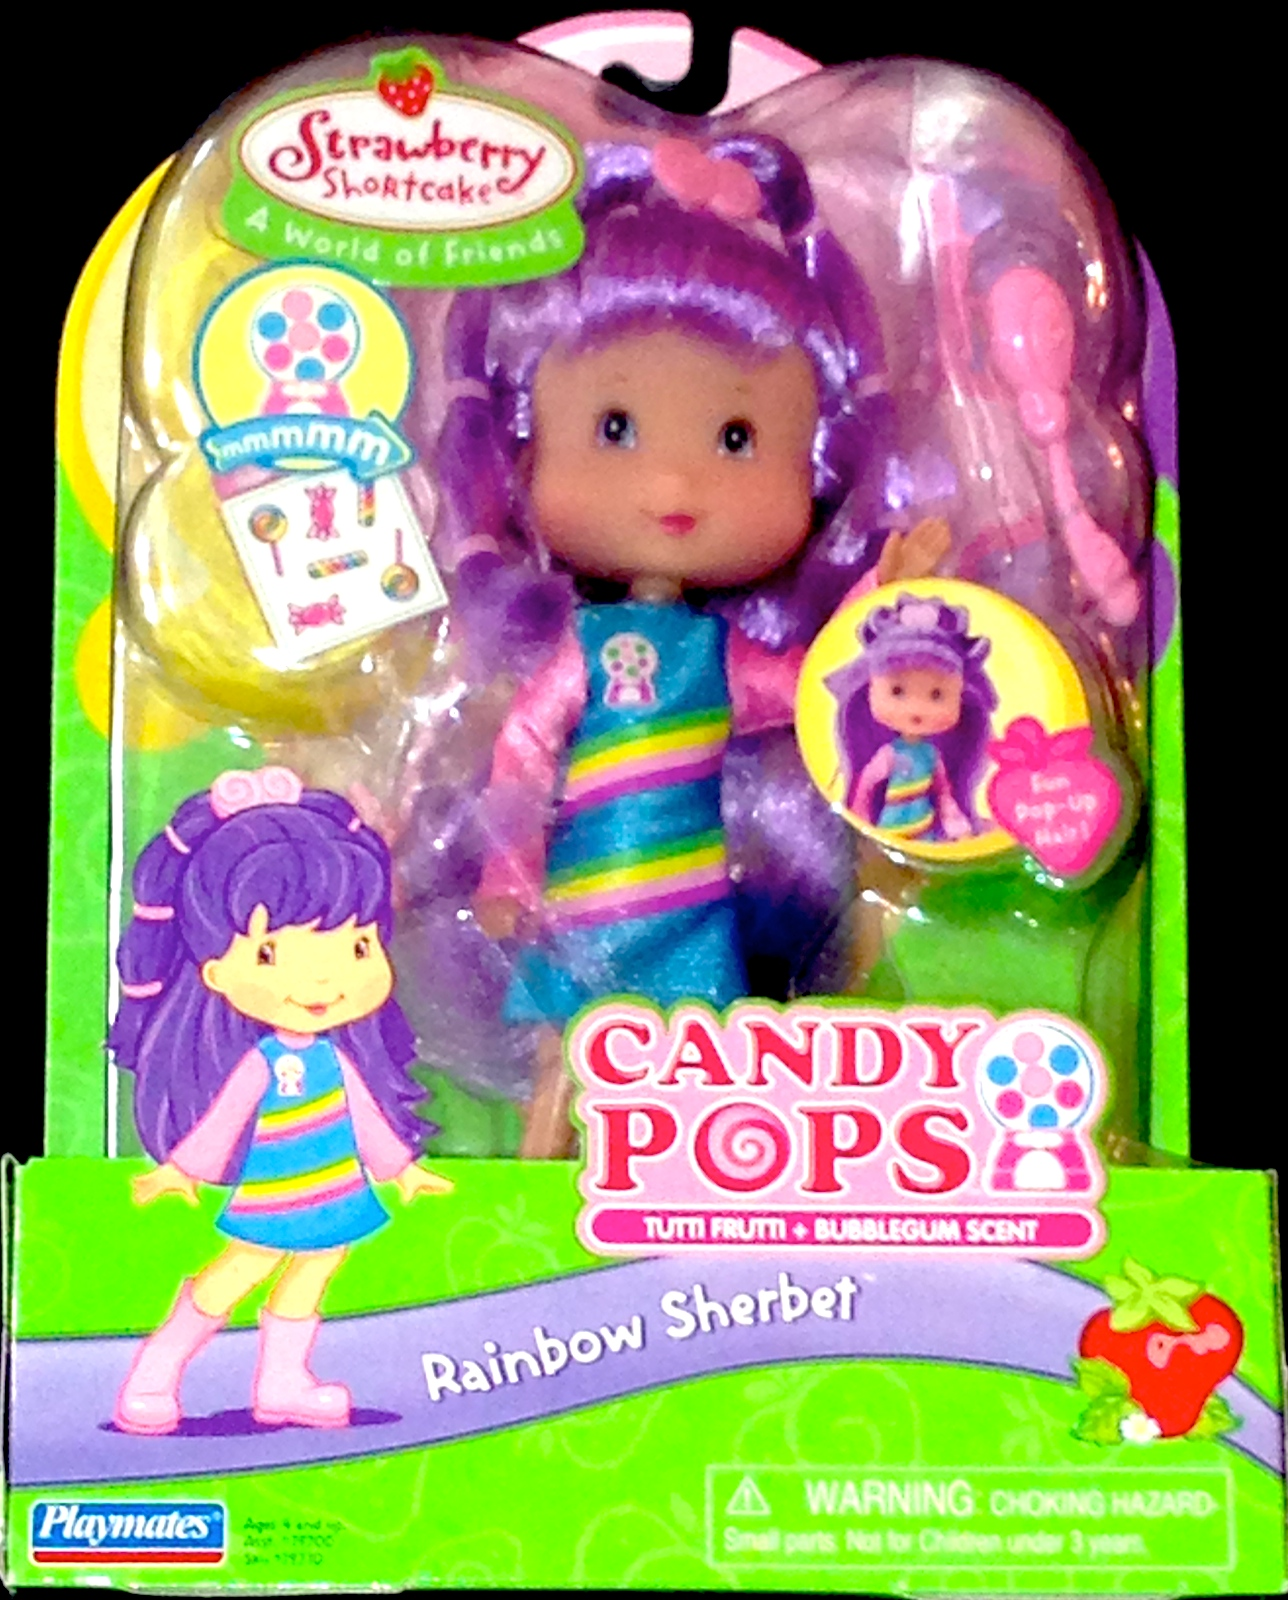 Candy Pops Rainbow Sherbet Doll Strawberry Shortcake